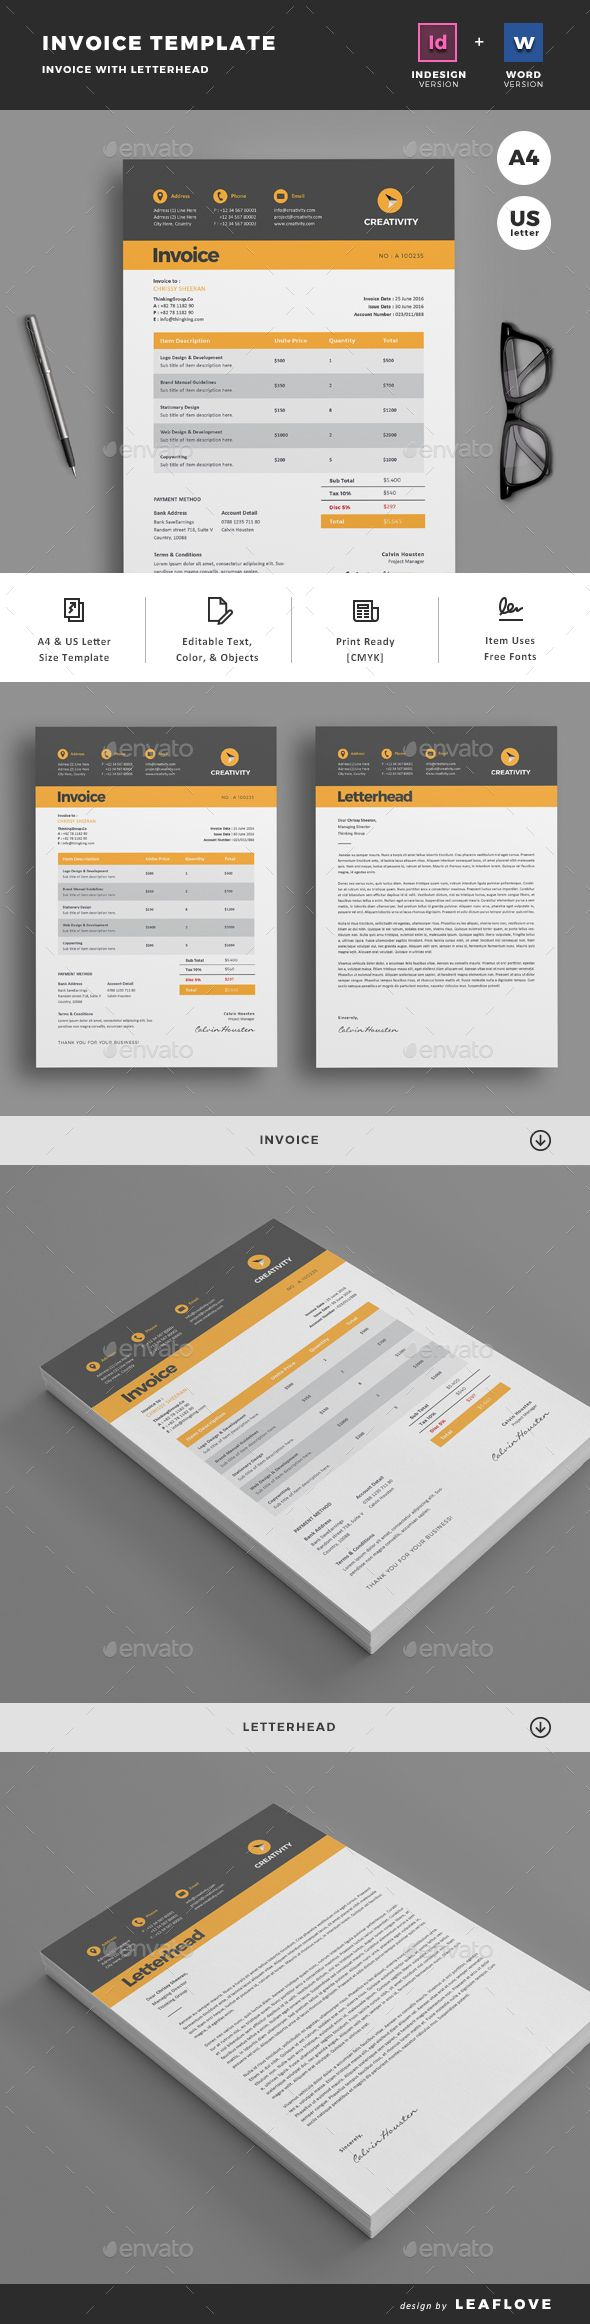 Invoice by LeafLove Clean Invoice Template. This layout is suitable for any project purpose. Very easy to use and customise. .........................